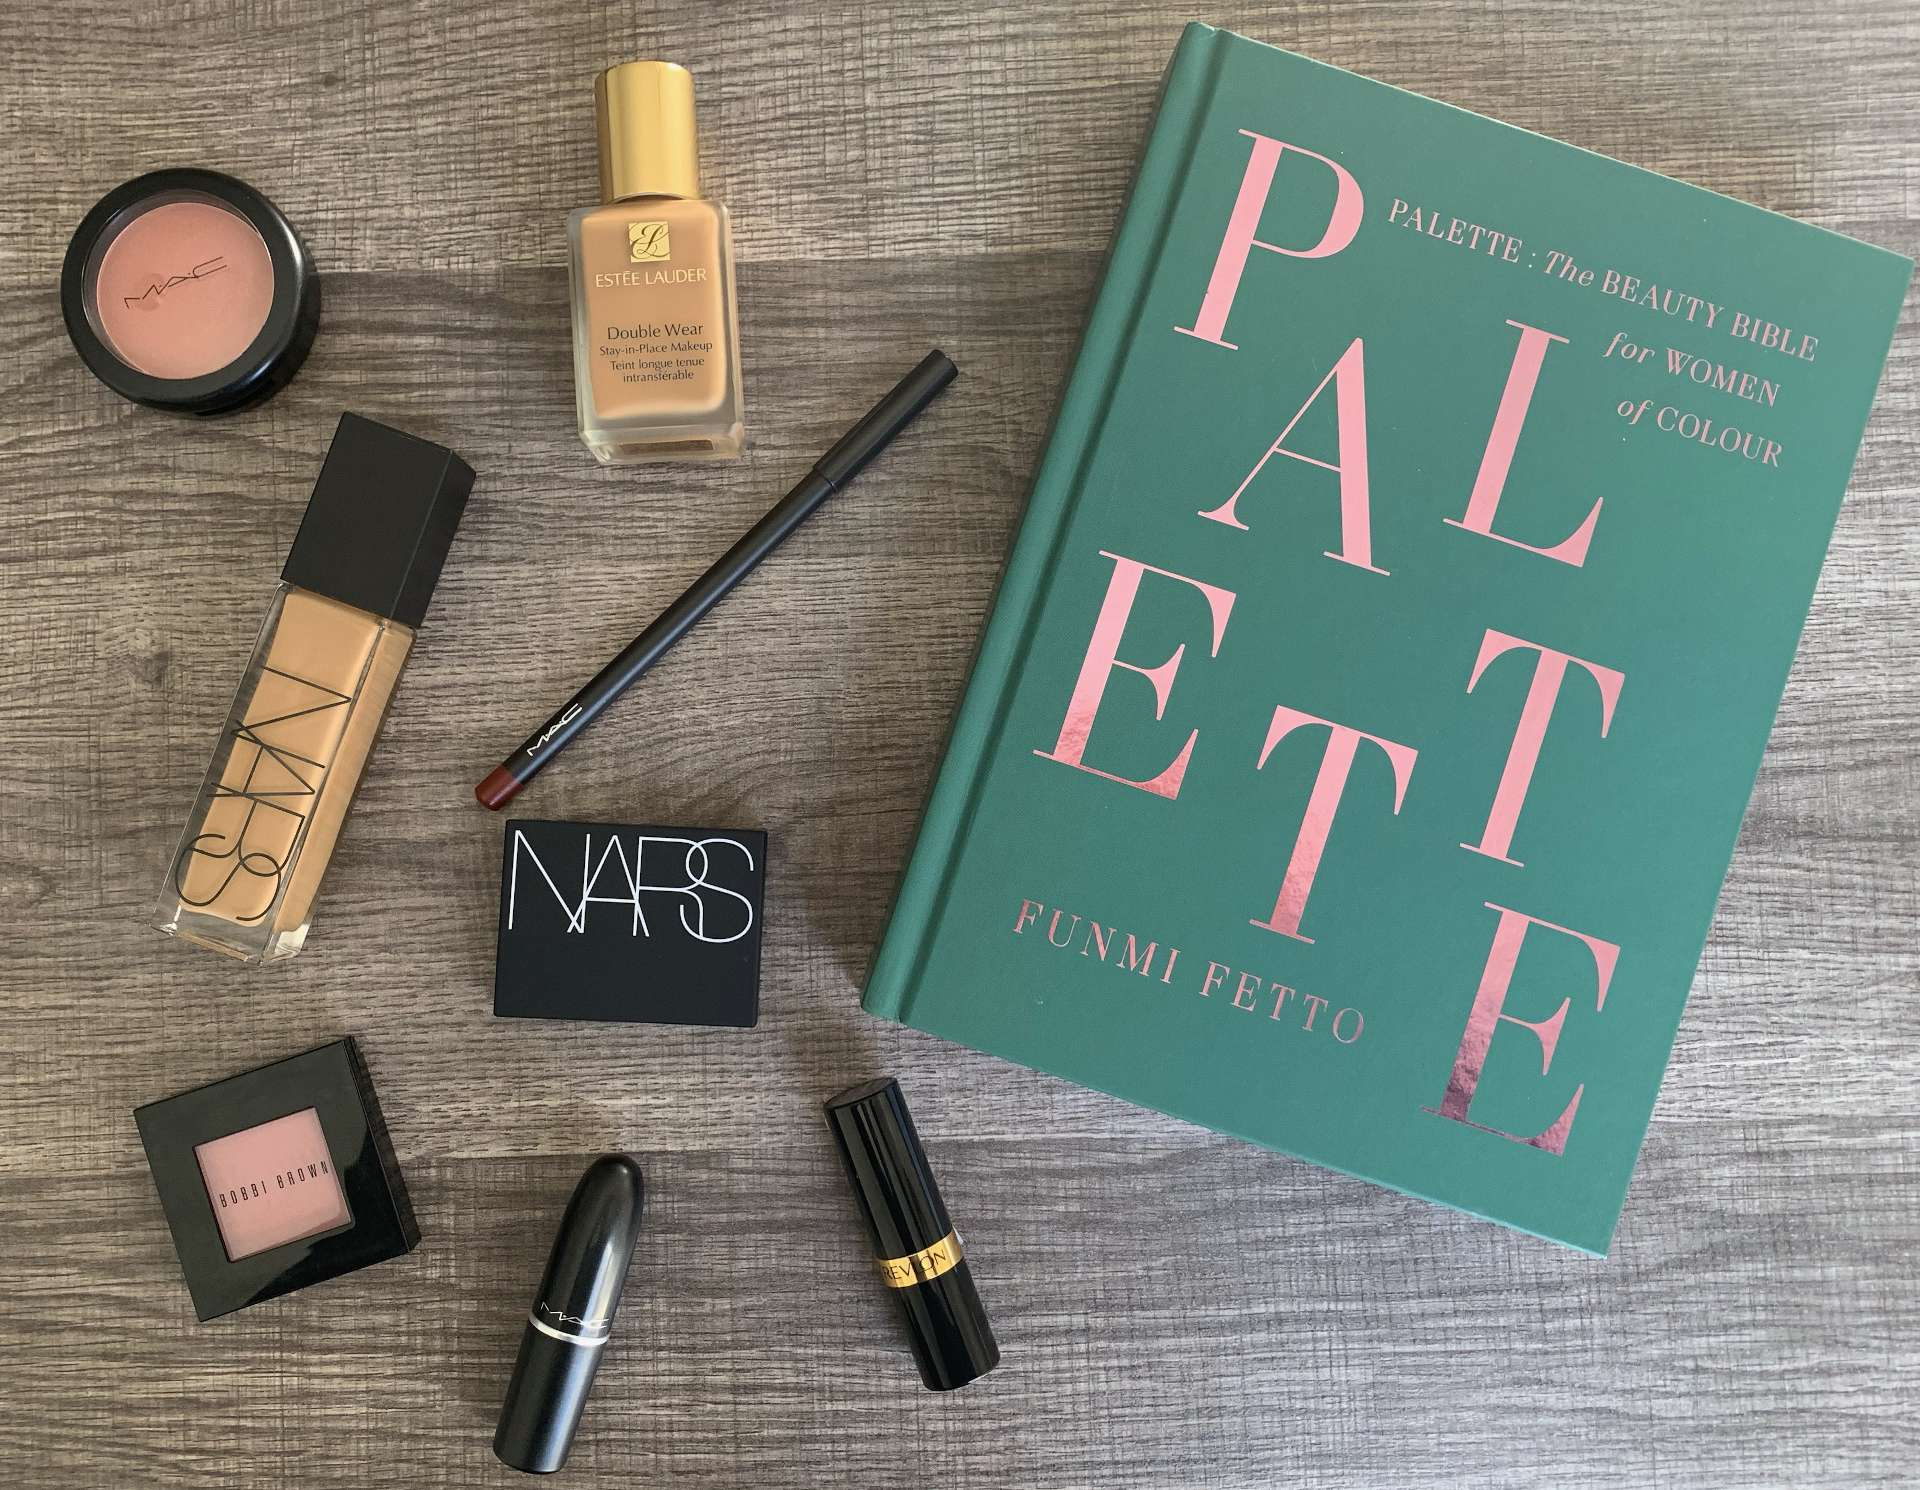 Palette: The Beauty Bible for Women of Colour Book Review and swatches of featured products